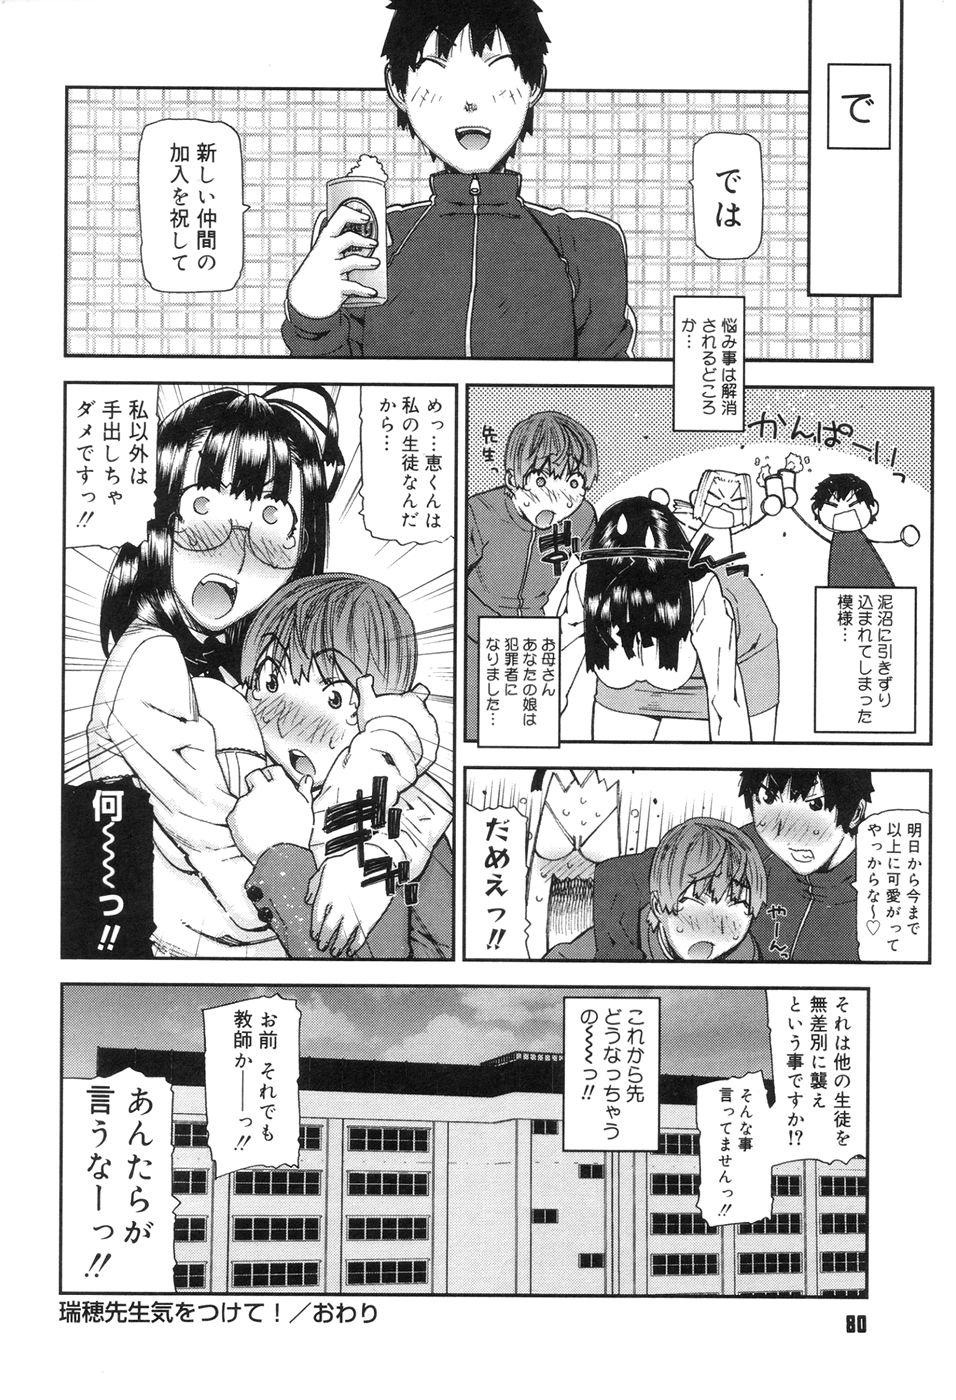 Onee-chan to issho 81